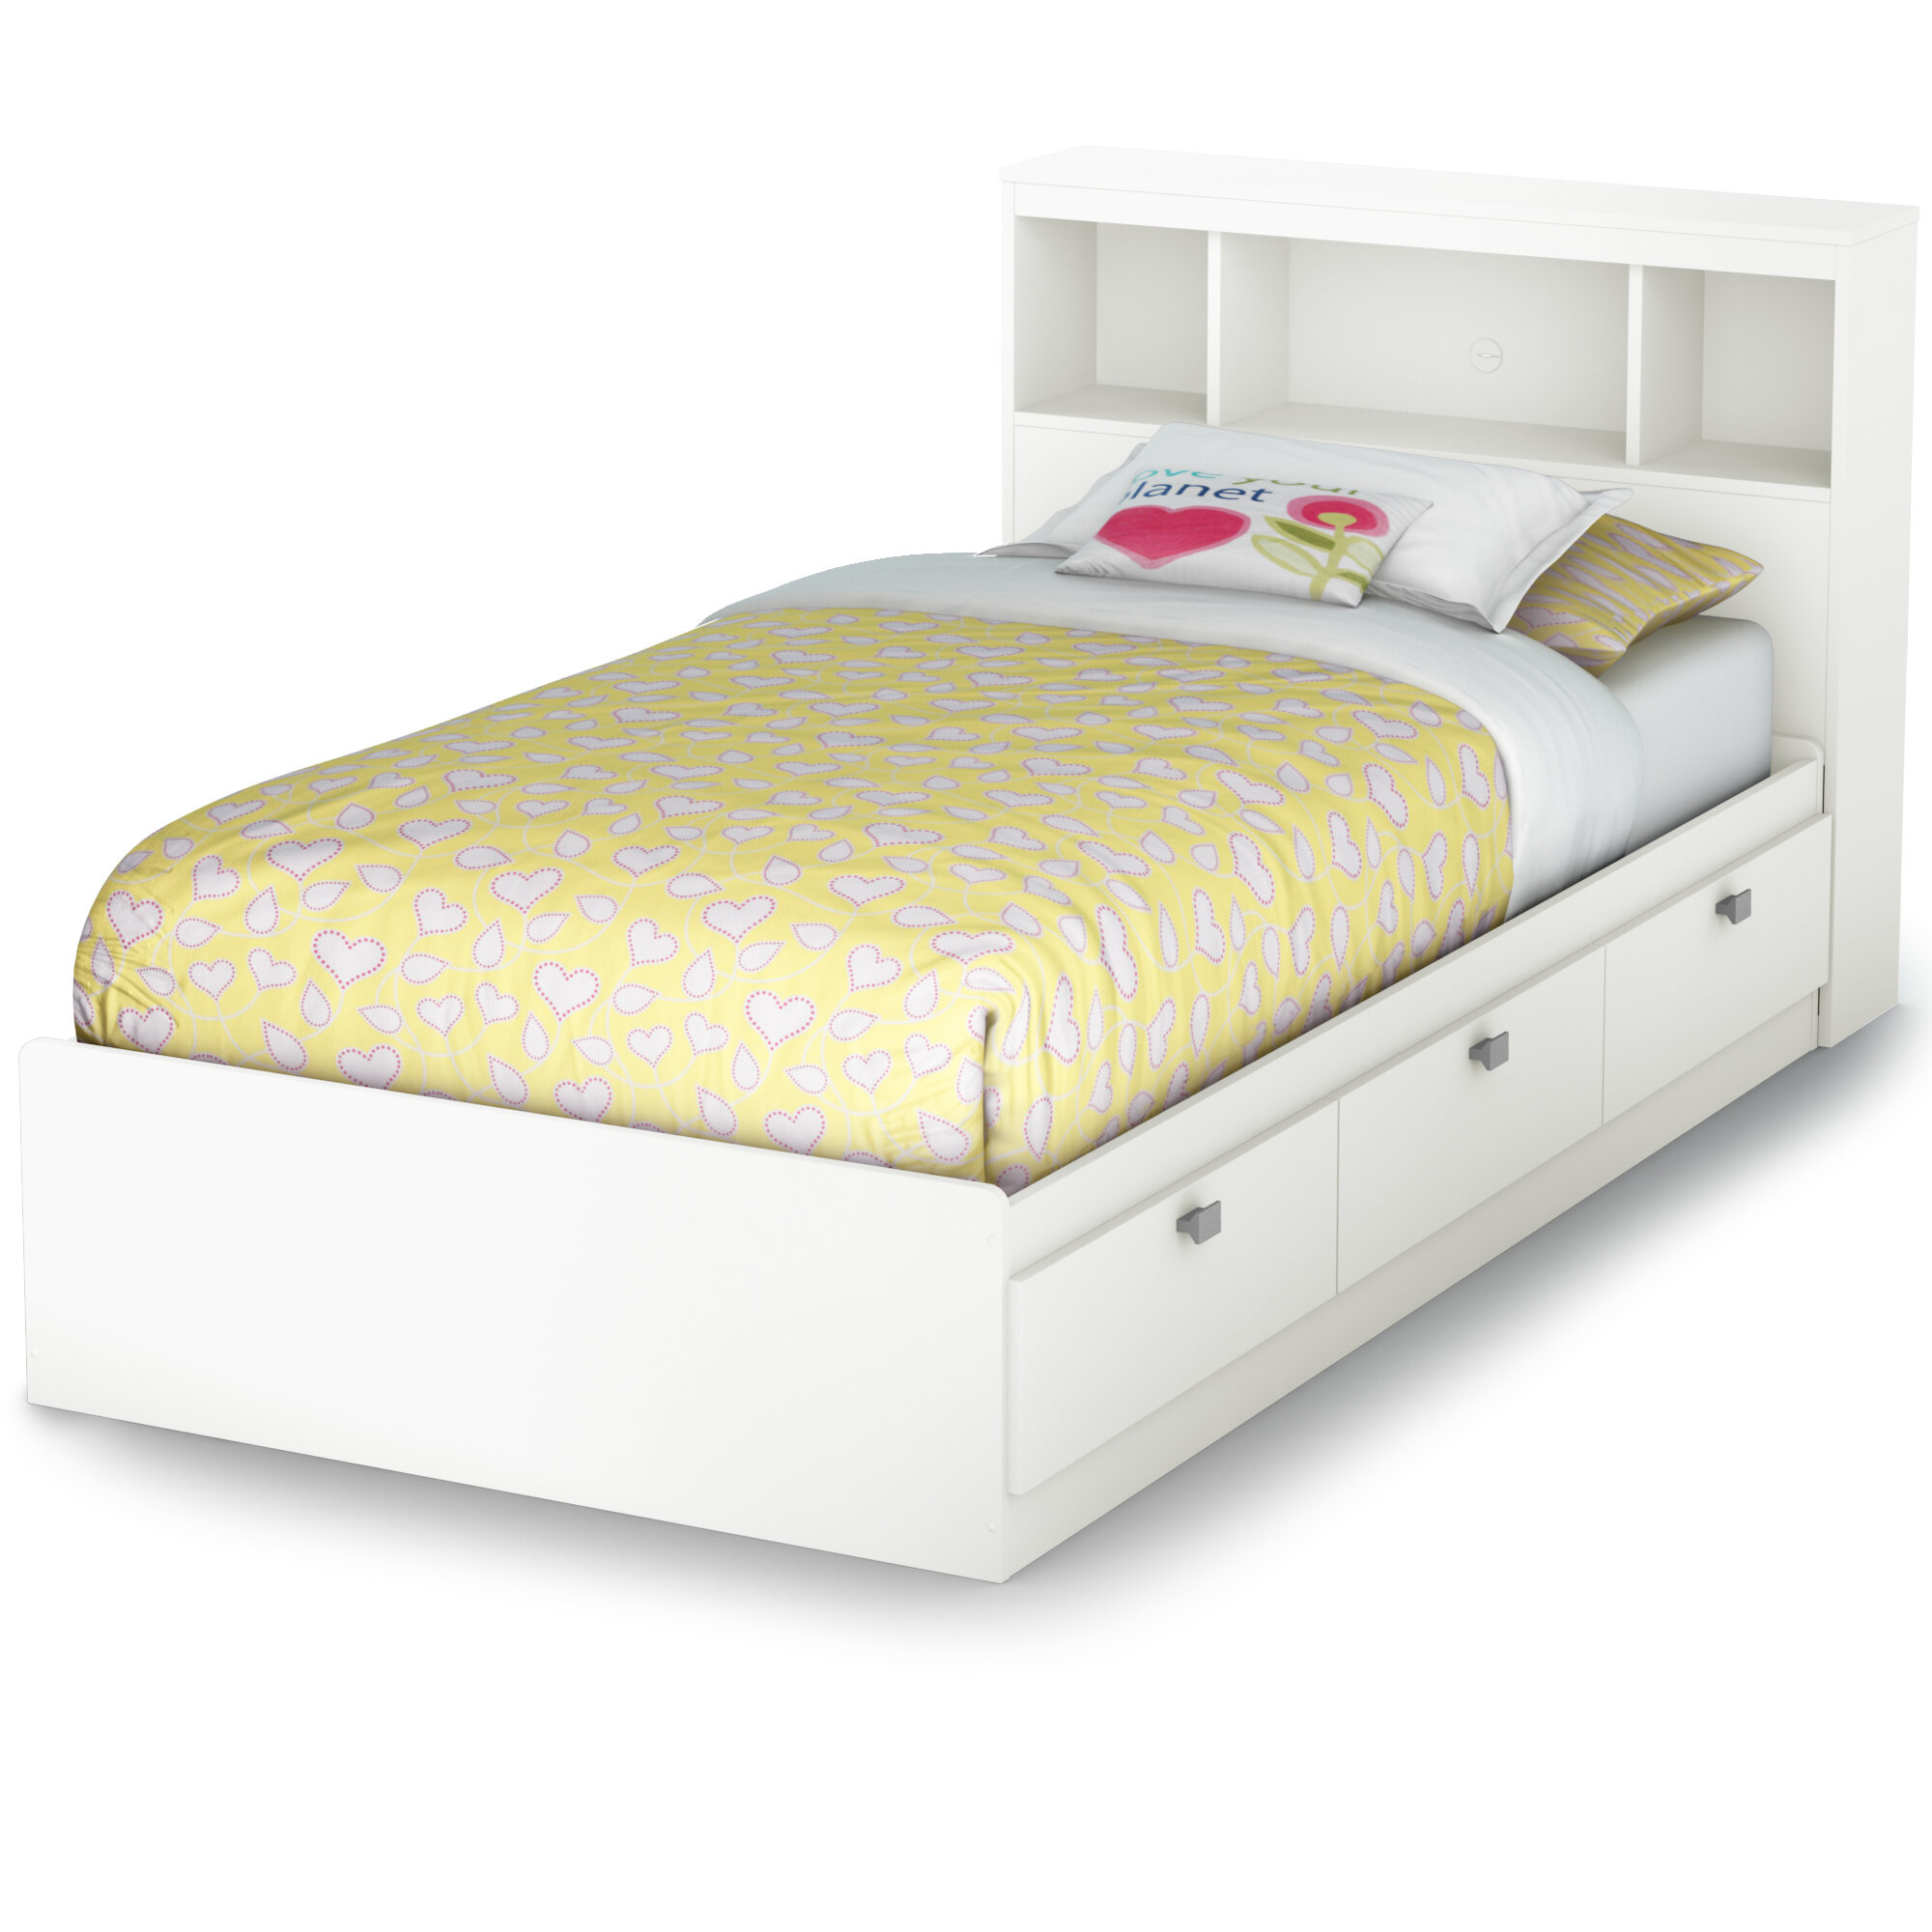 South S Spark Twin Mate Captain Bed With Headboard Reviews Wayfair